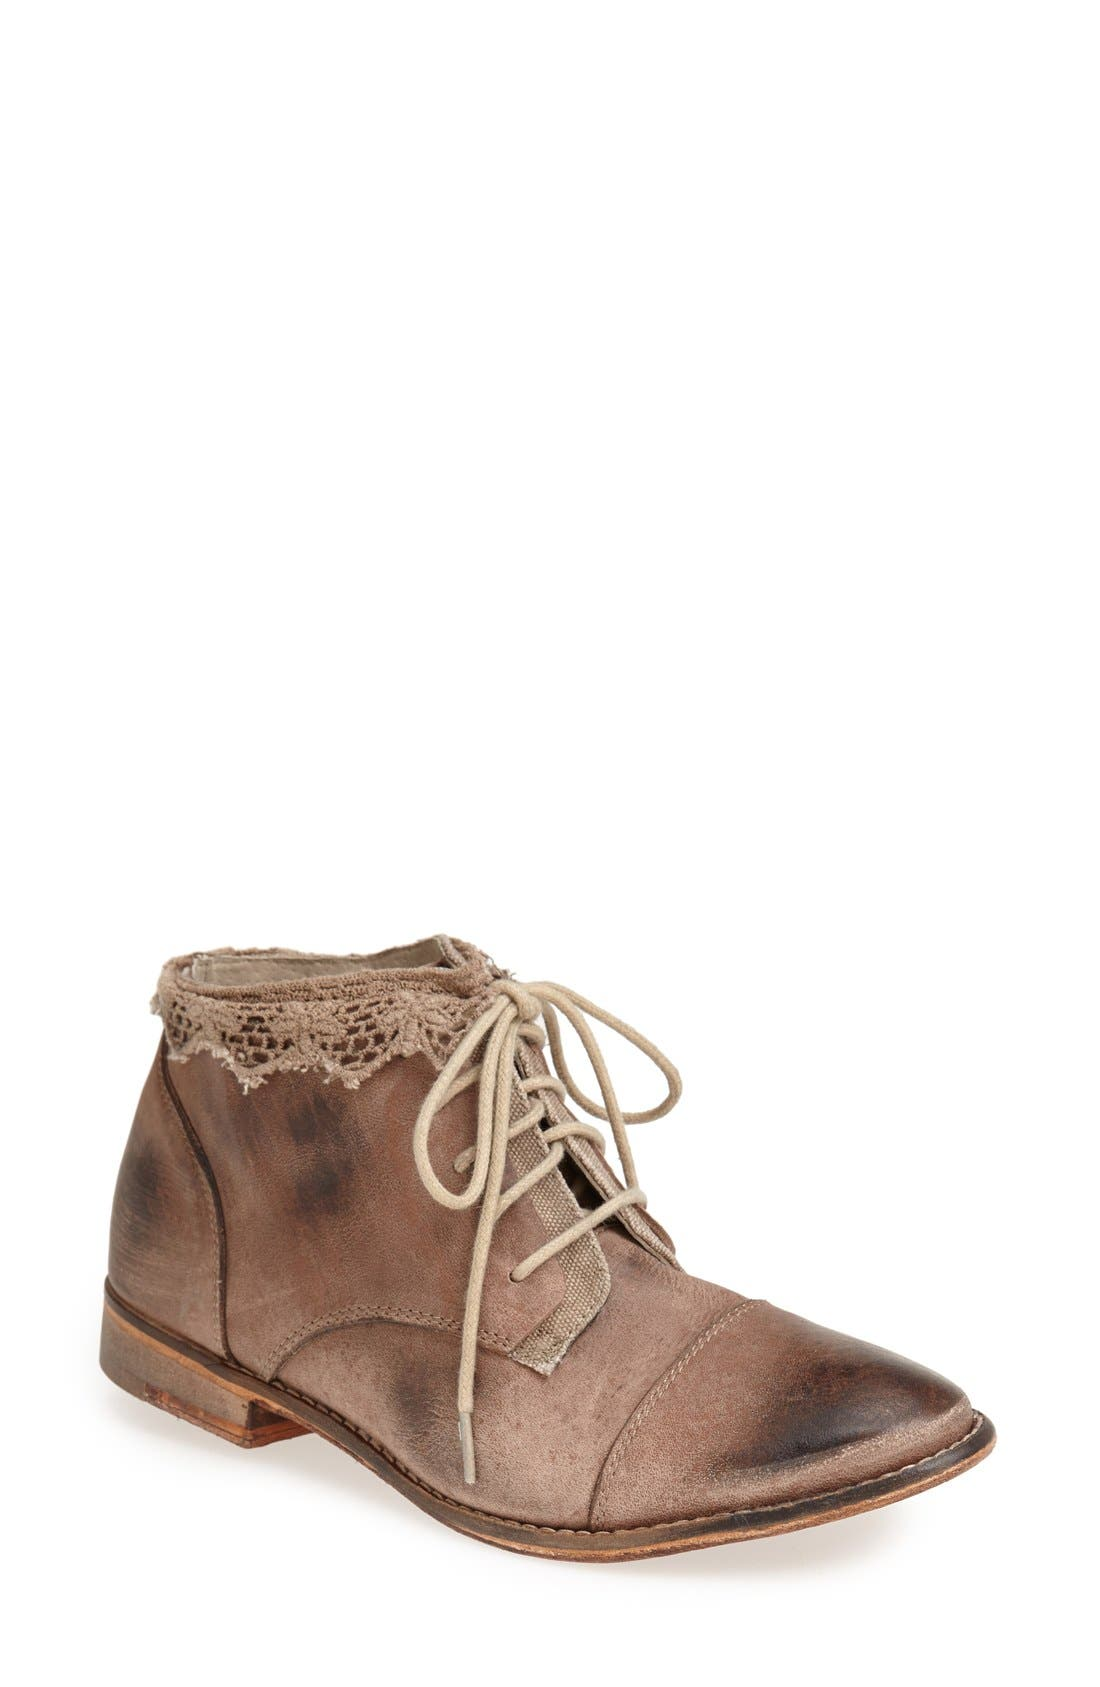 Alternate Image 1 Selected - Free People 'Vaughan' Crochet Boot (Women)